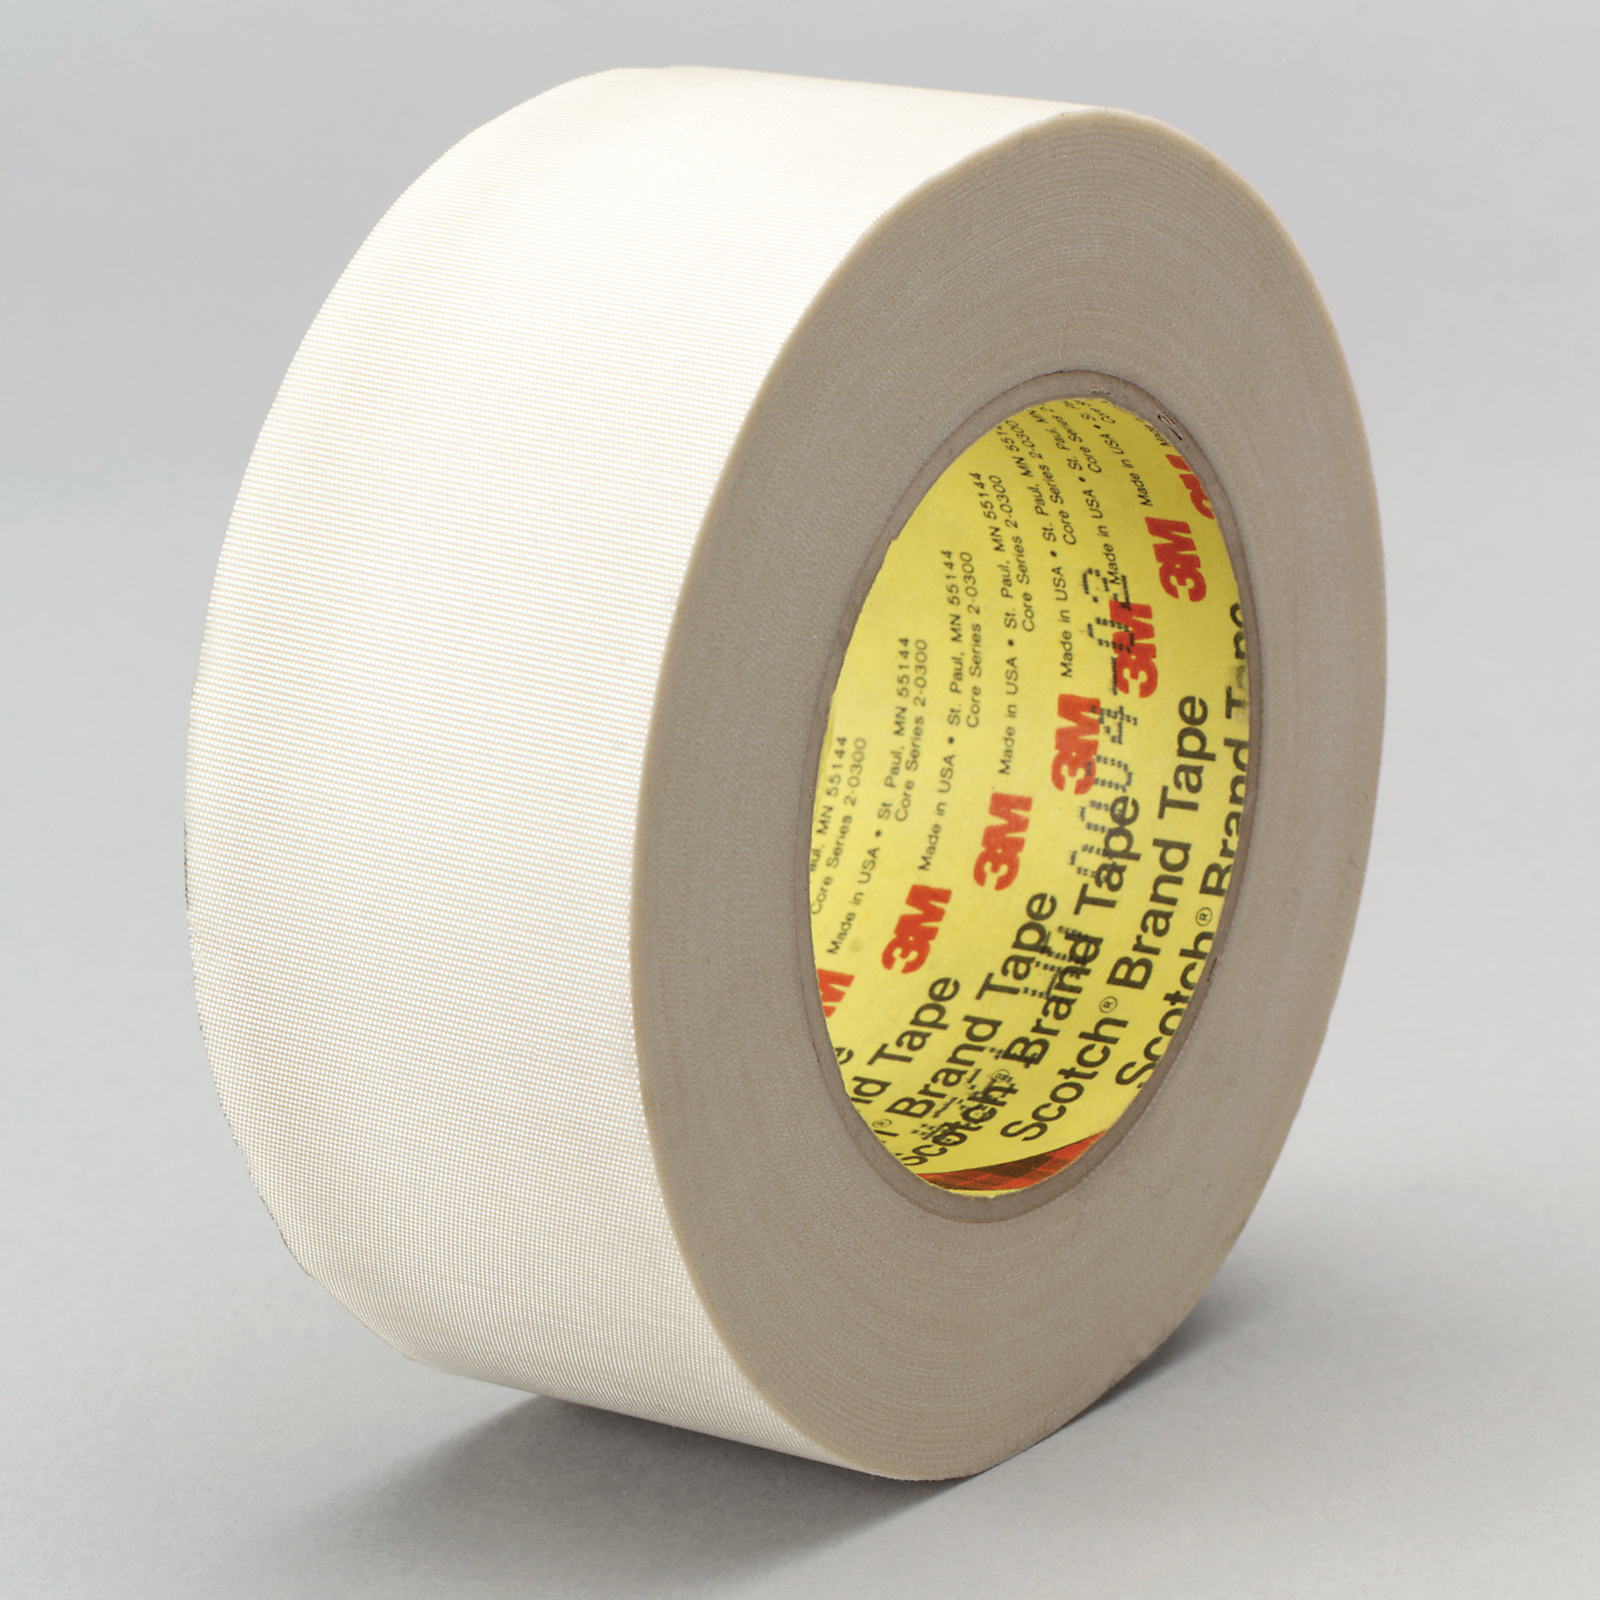 3M™ 021200-05513 Cloth Tape, 60 yd L x 1-1/2 in W, 6.4 mil THK, Silicone Adhesive, Glass Cloth Backing, White